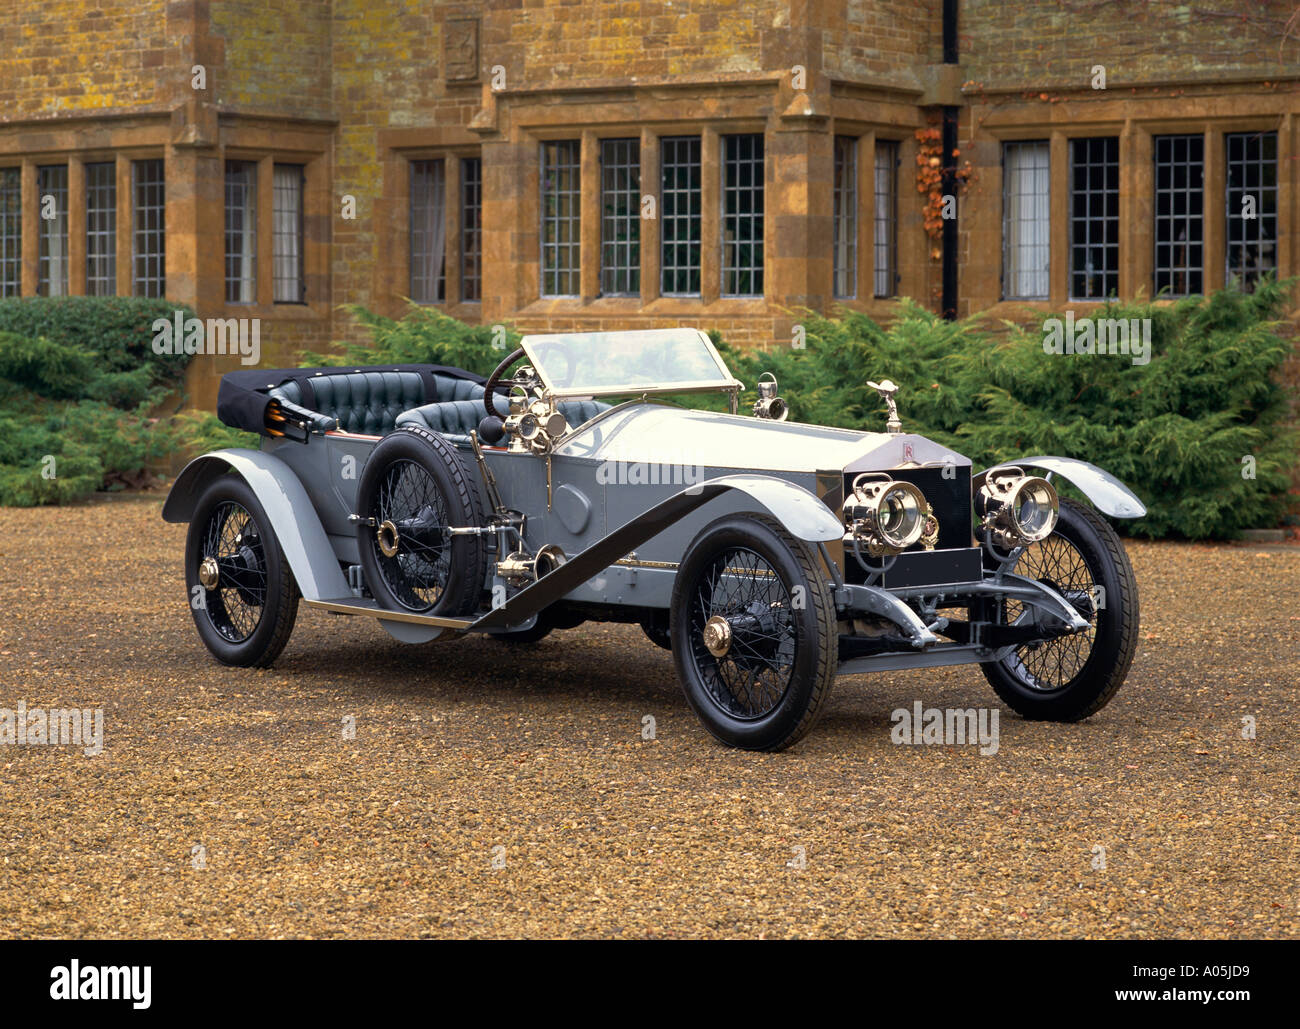 1911 Rolls Royce 40 50 HP Silver Ghost London Edinburgh type The Sluggard 7.4 litre 6 cylinder engine producing 48bhp - Stock Image